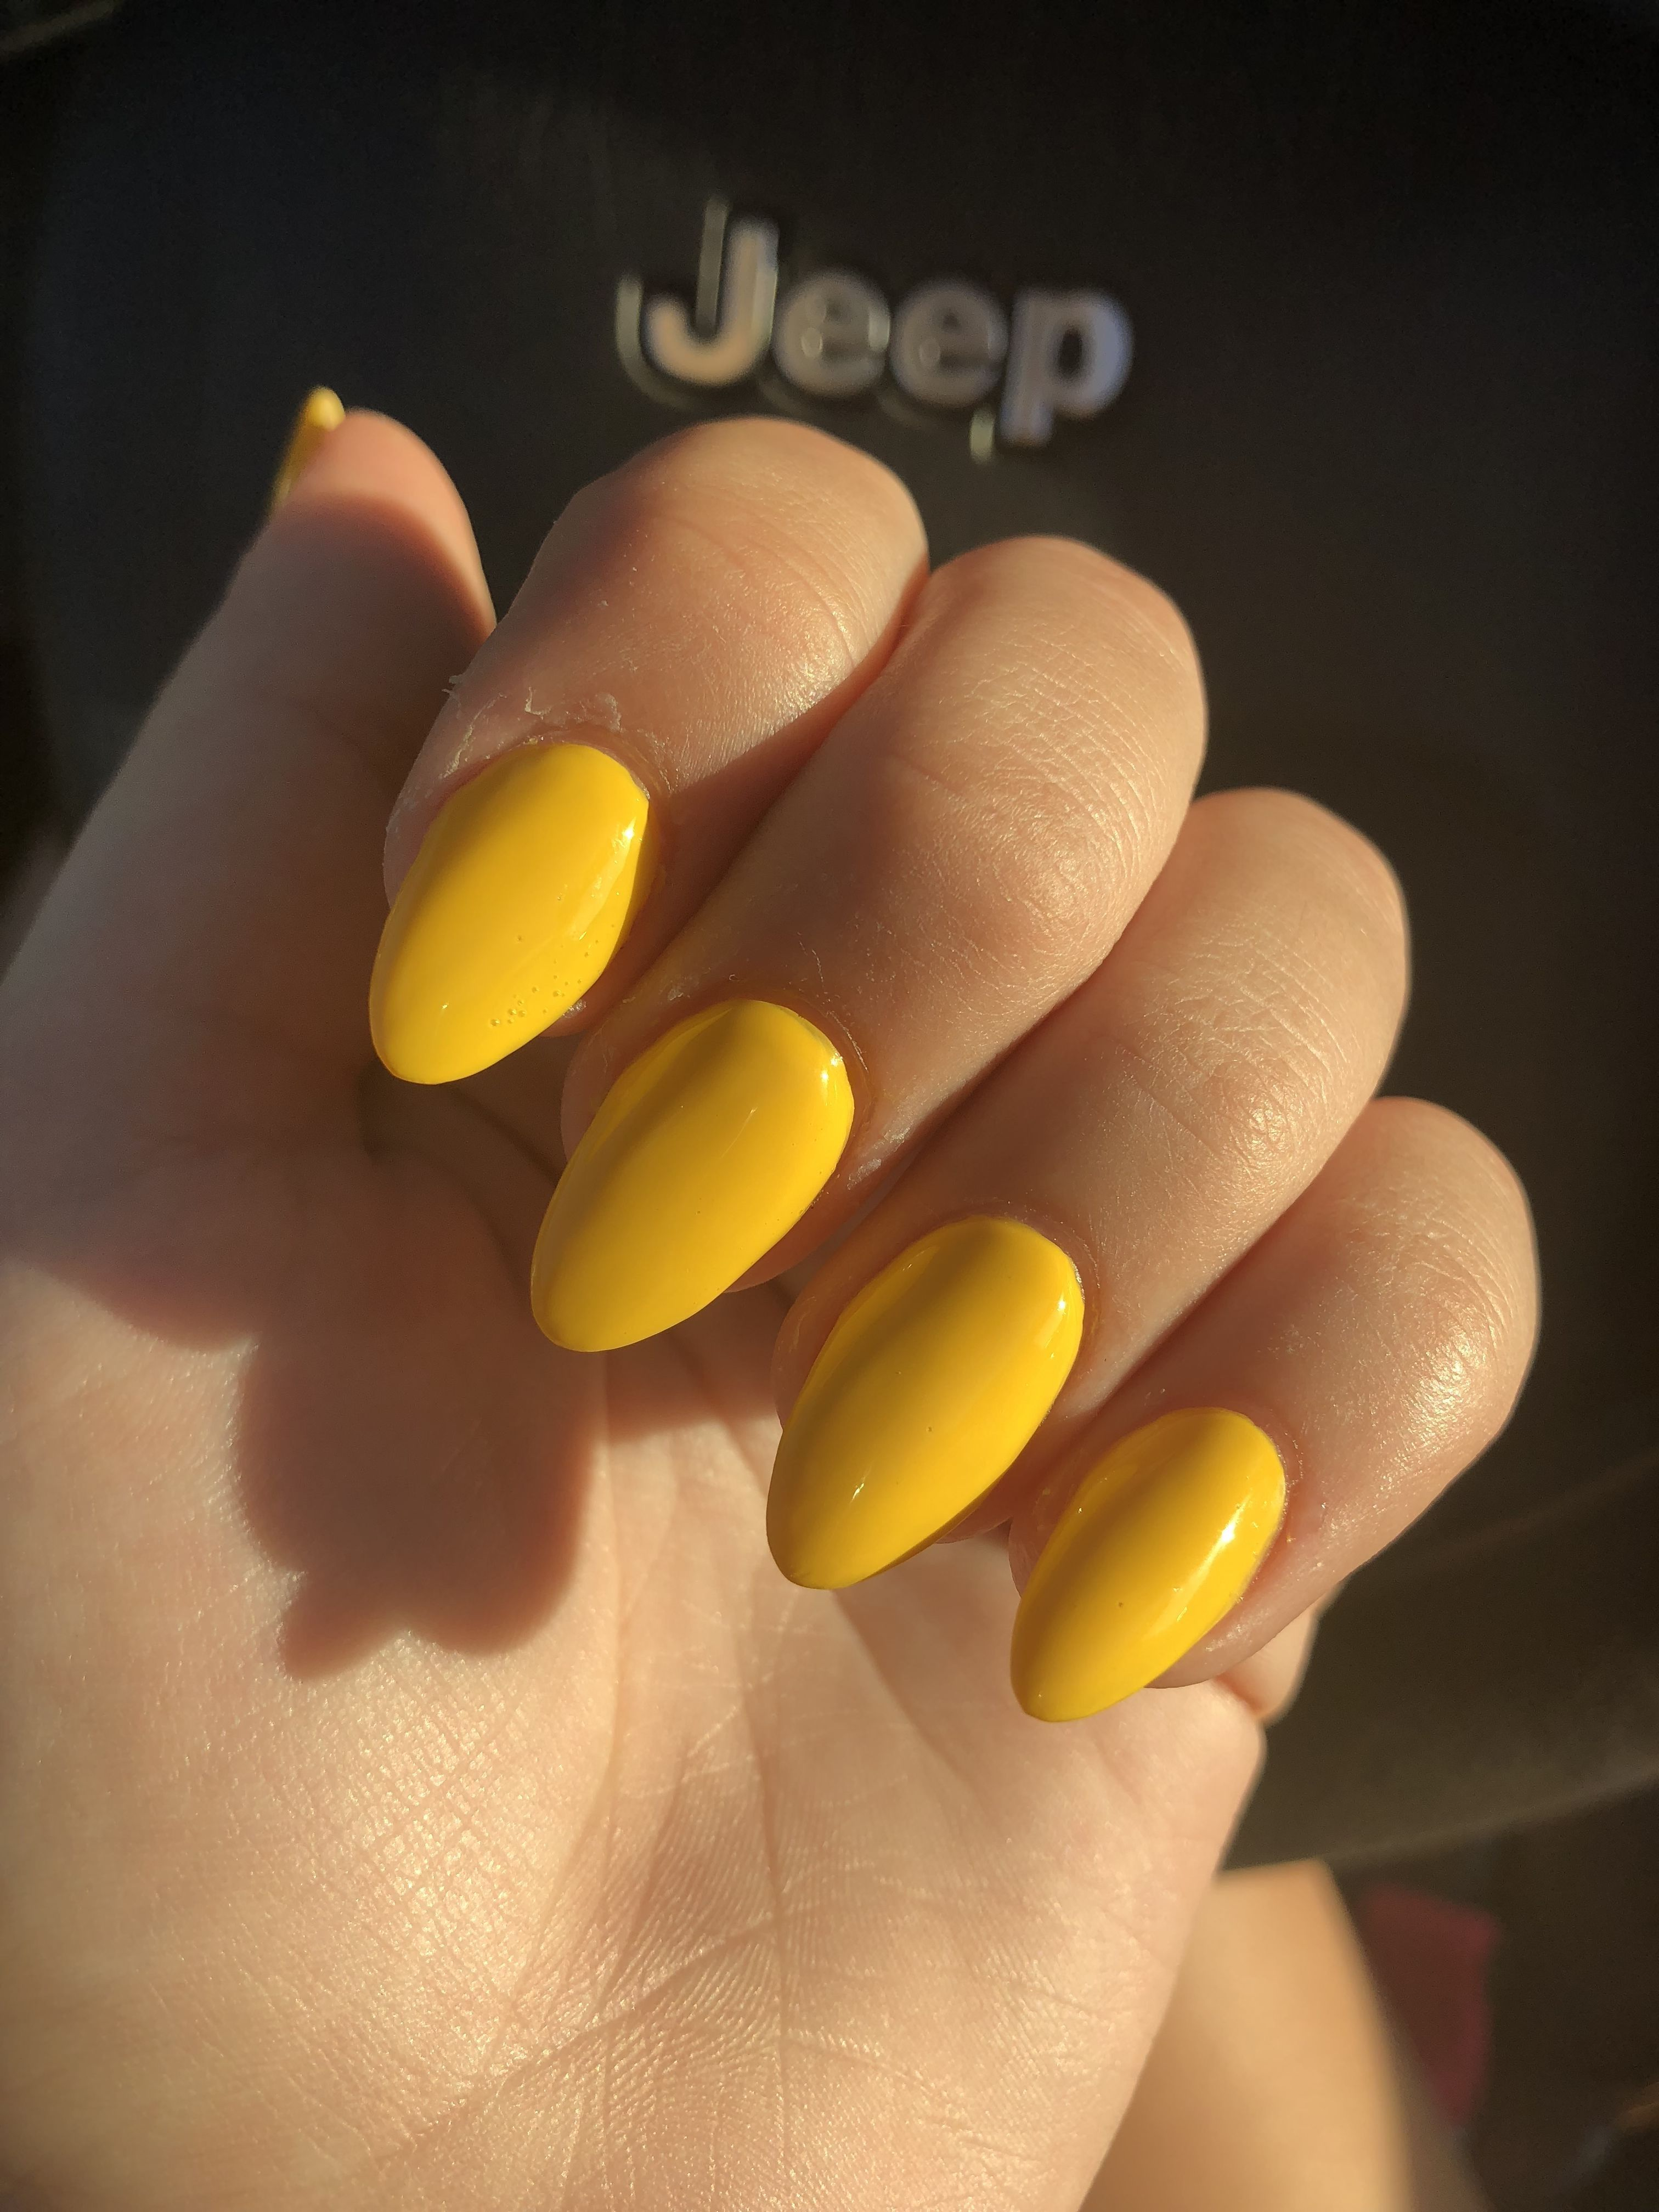 Acrylic Nails Short For Kids Facebook Twitter Pinteresteaster Eggs Aside How Exciting Is It That Spri Acrylic Nails Yellow Oval Shaped Nails Oval Acrylic Nails